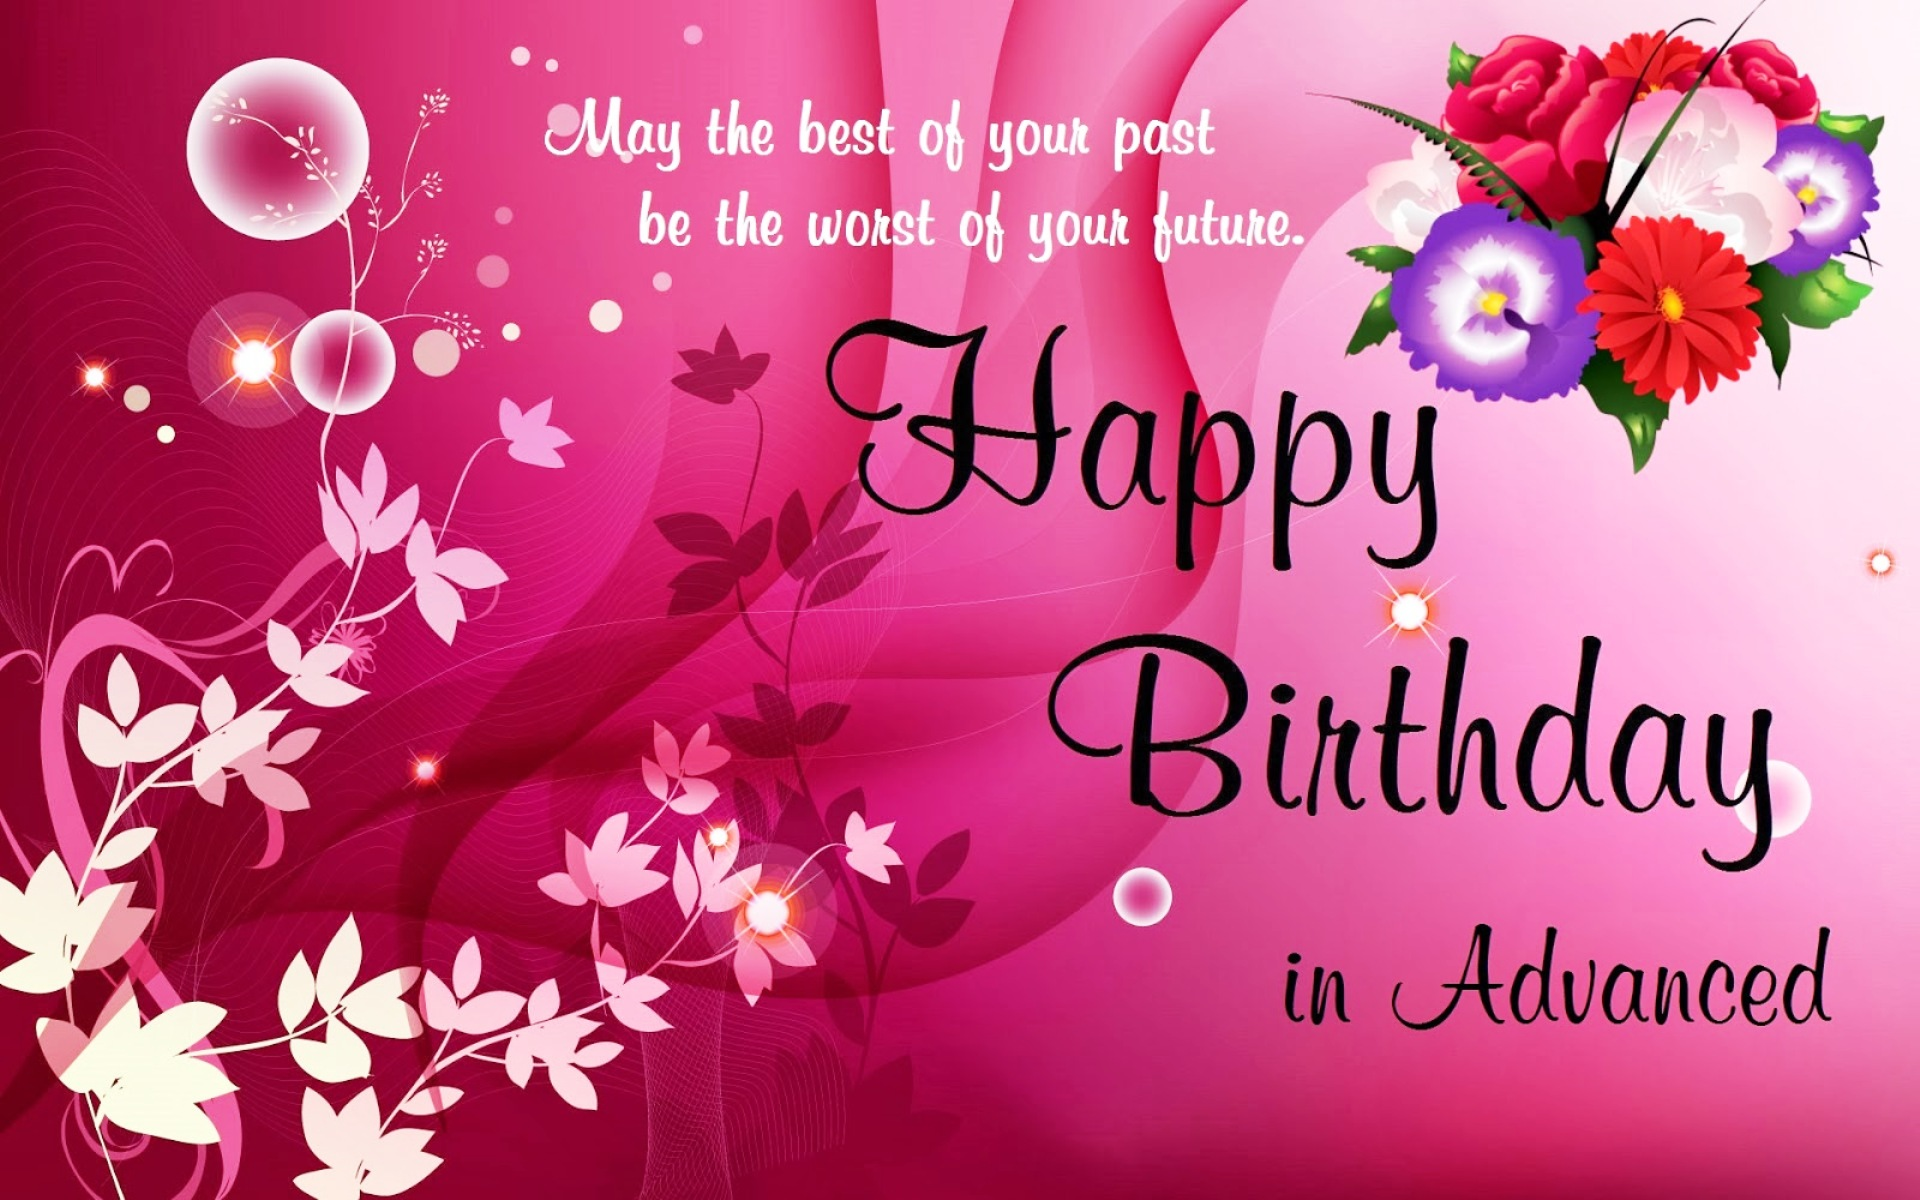 birthday wishes free download ; happy-birthday-images-free-wishes